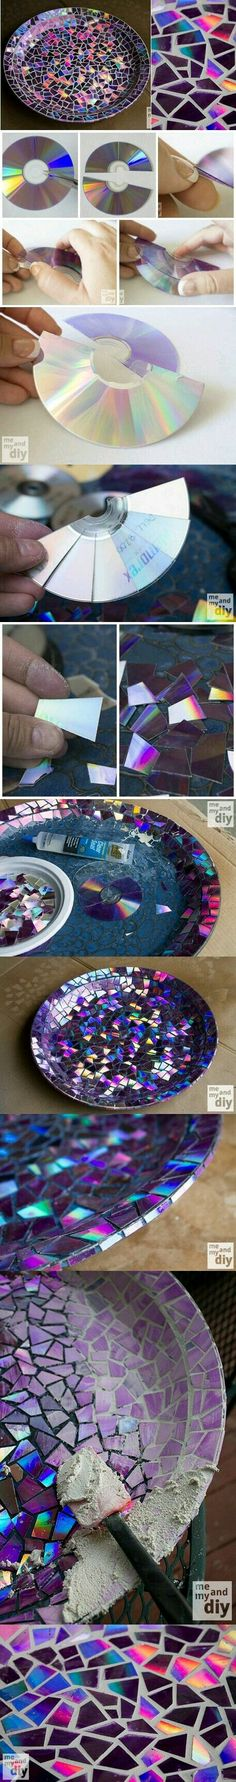 Create mosaic tiles by cutting up old cd's